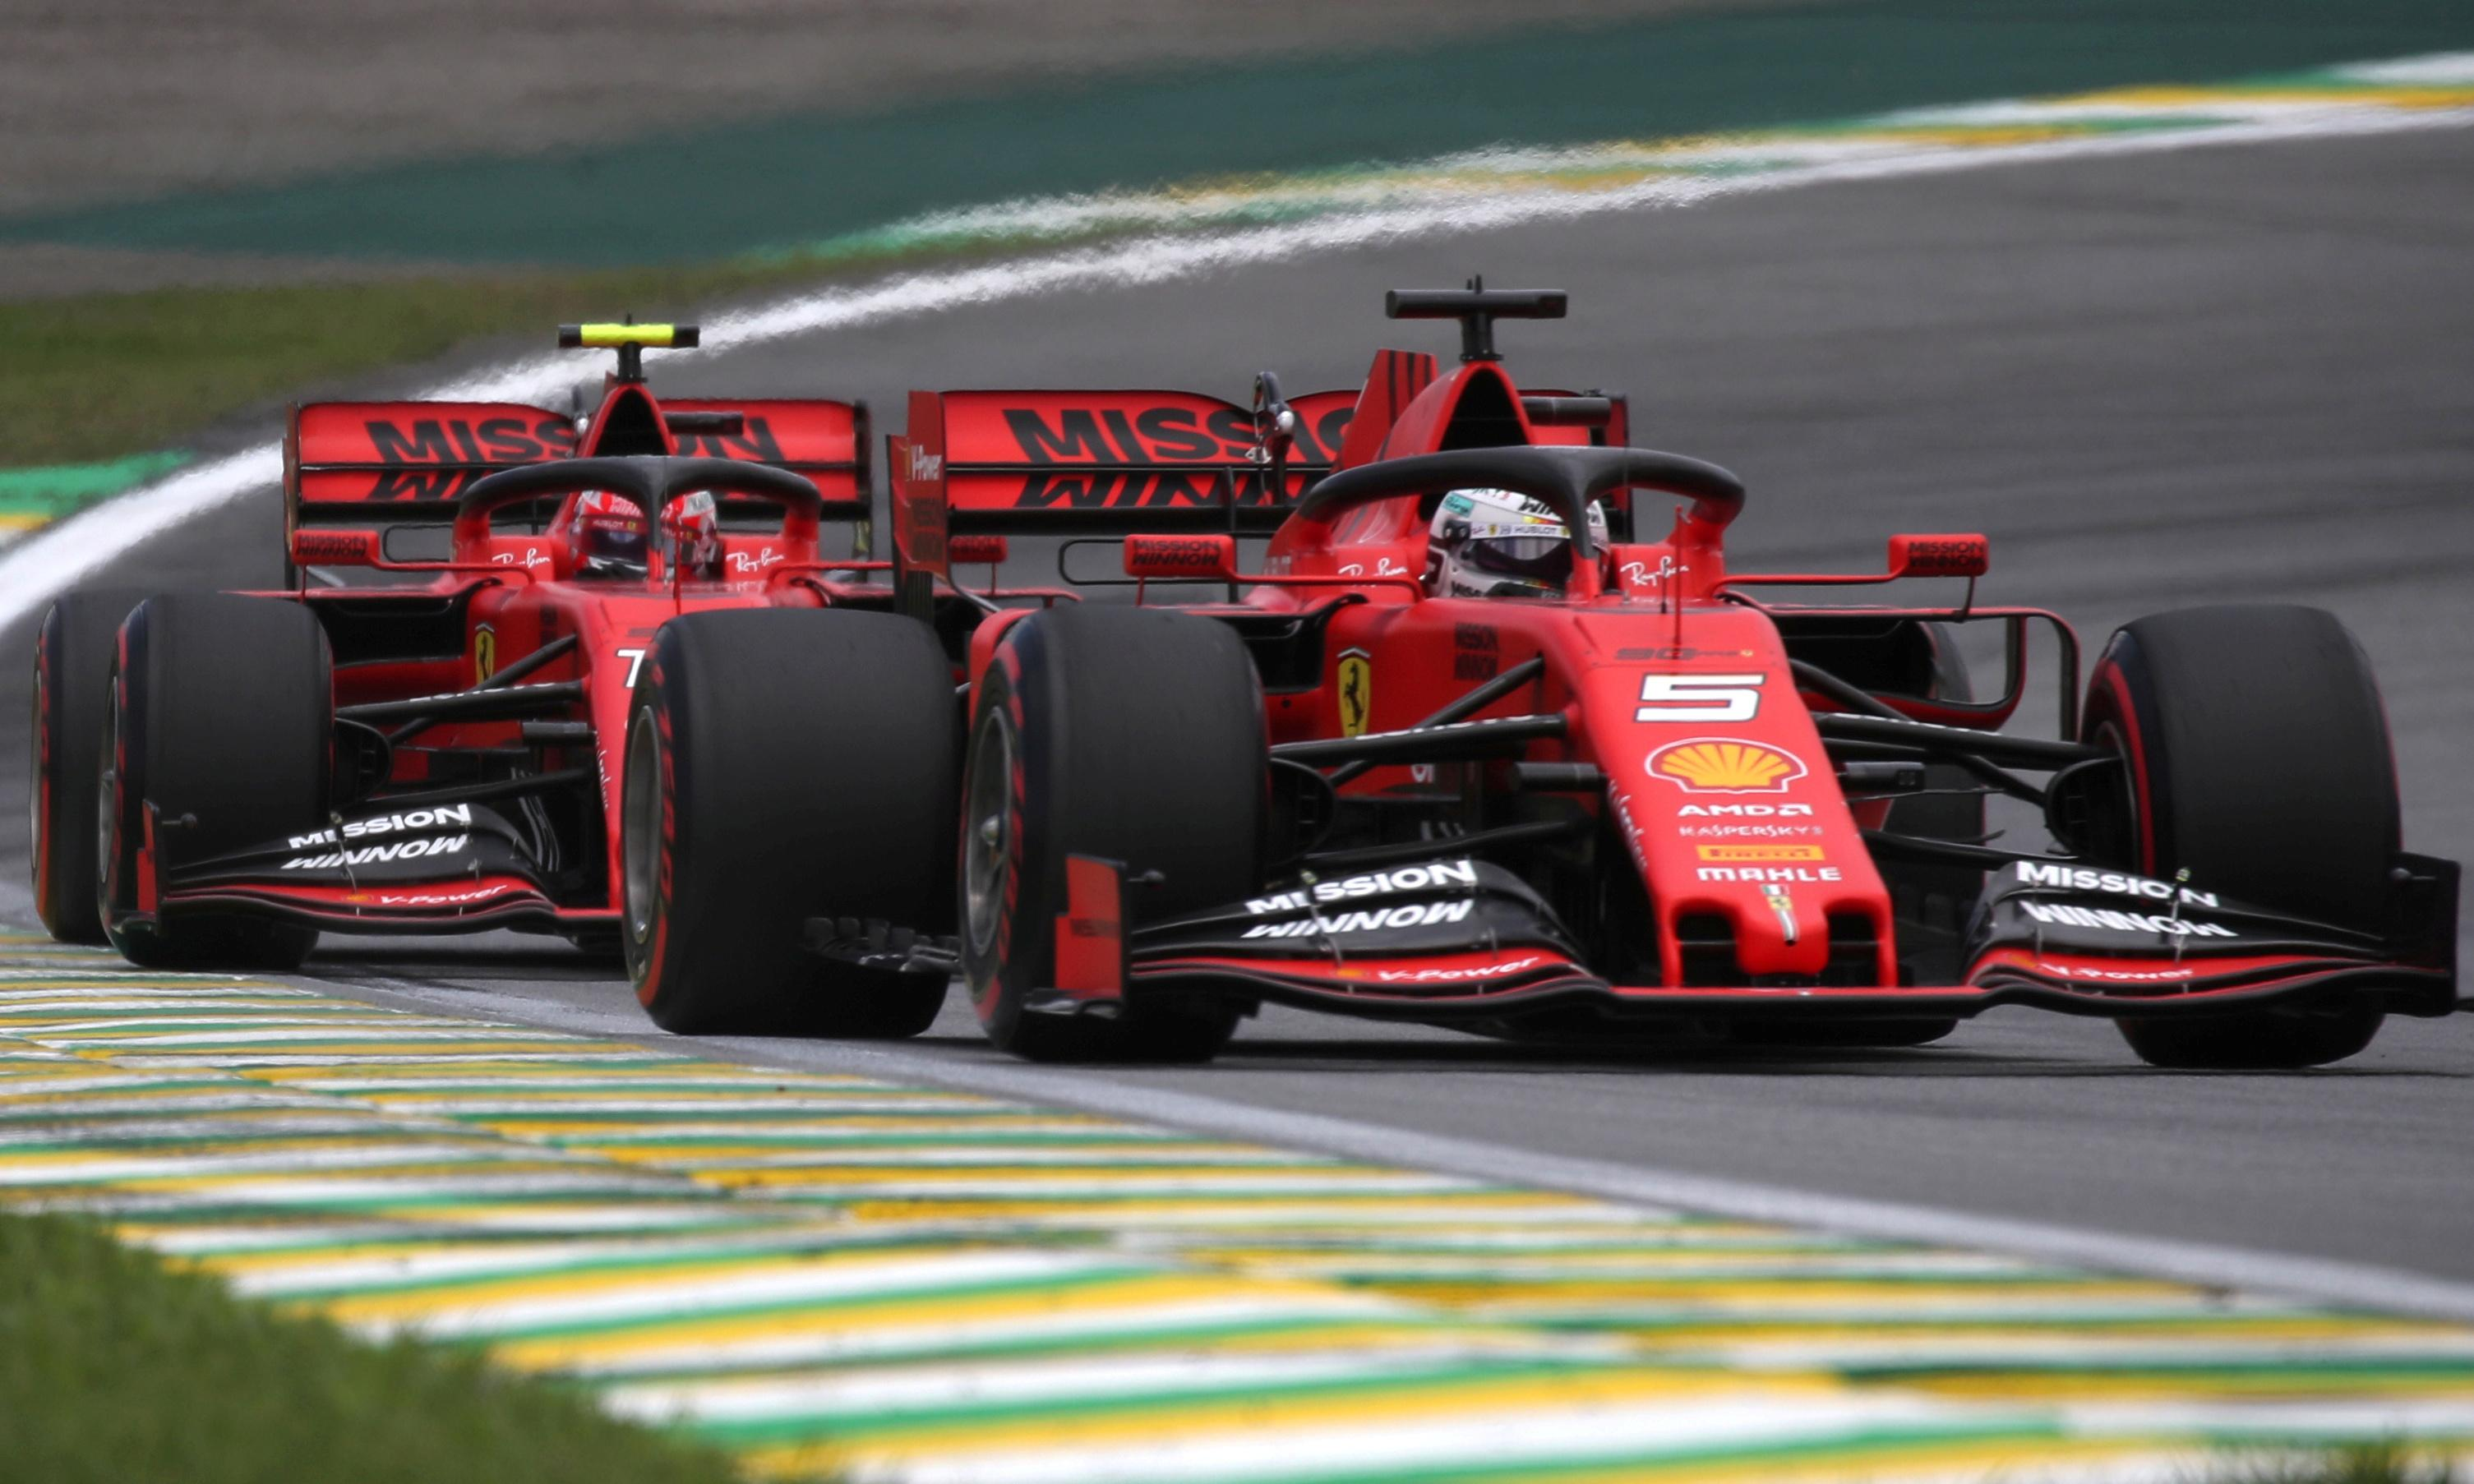 Leclerc has earned his spurs and deserves parity with Vettel at Ferrari